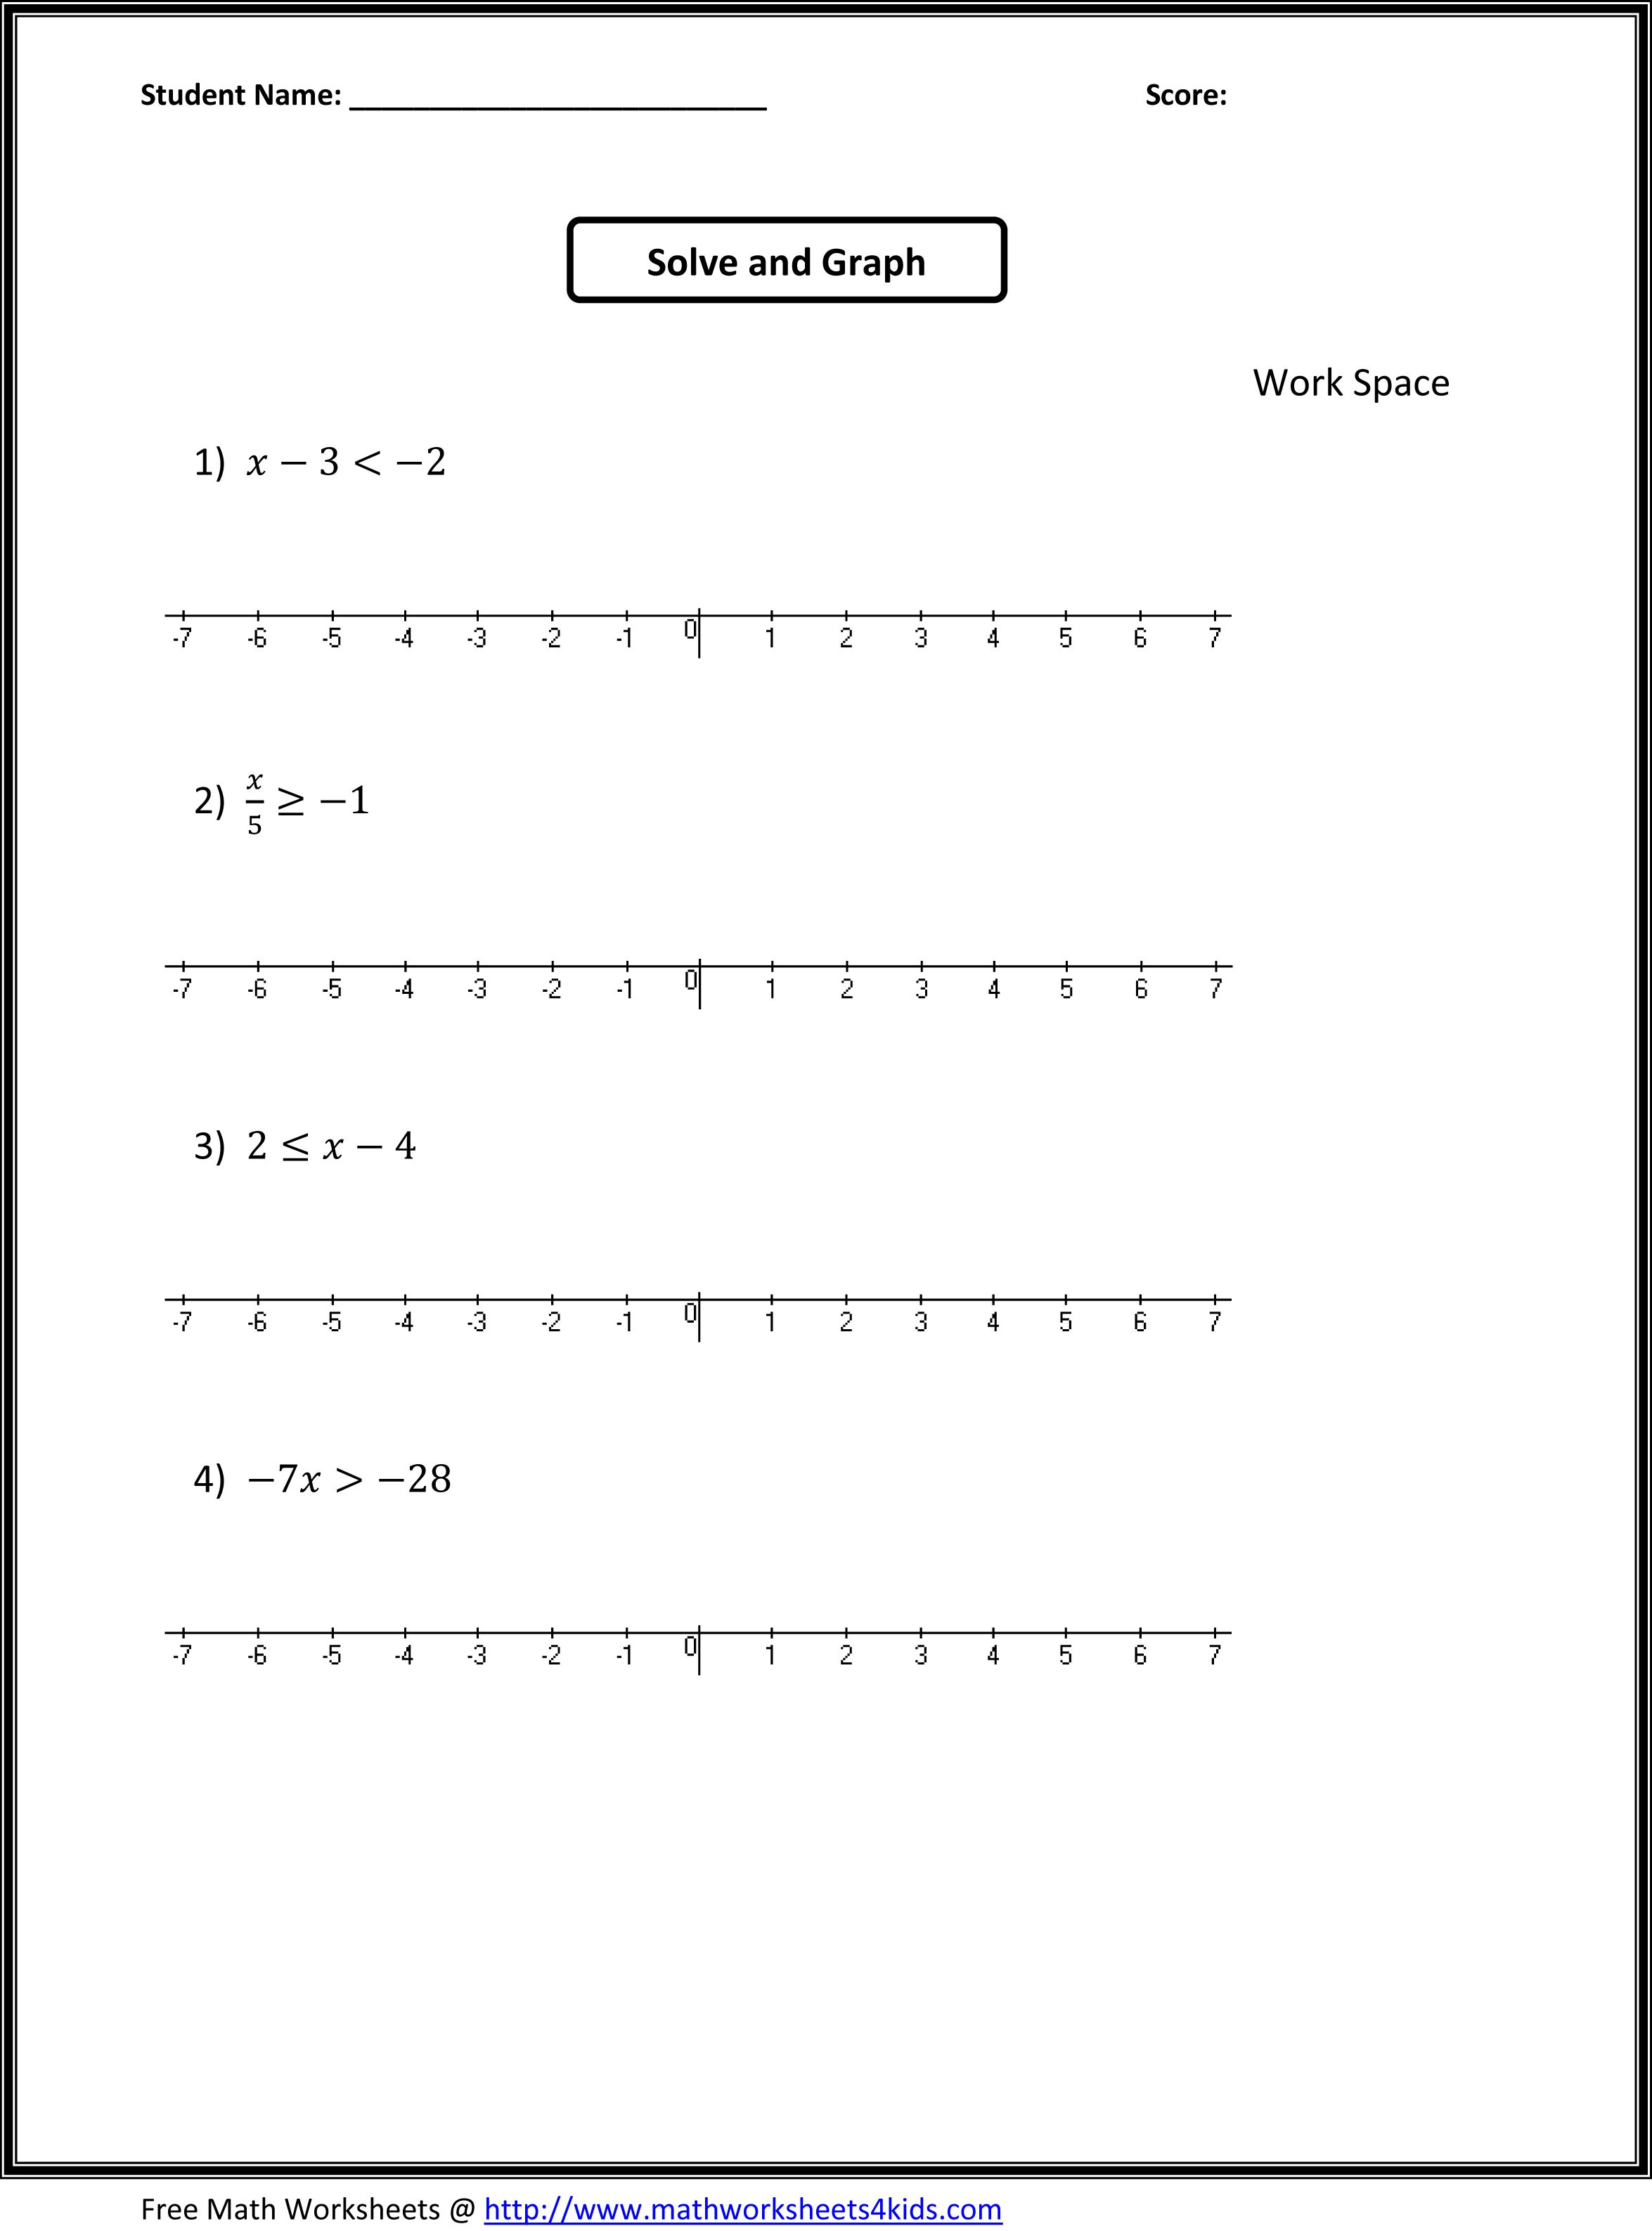 math worksheet : 7th grade algebra worksheets  7th grade math worksheets  places  : 7th Grade Math Review Worksheets